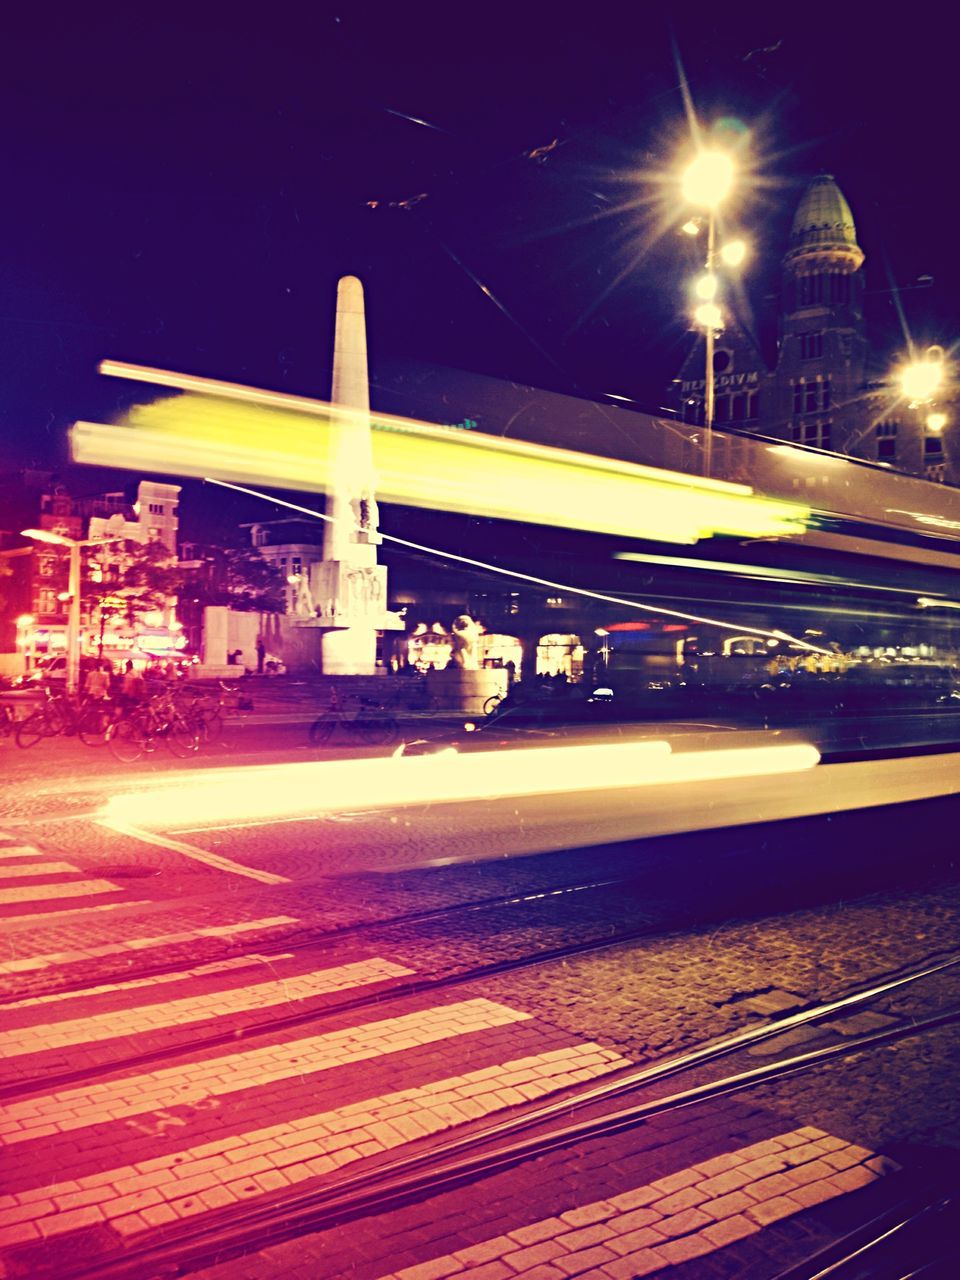 transportation, speed, night, illuminated, long exposure, light trail, blurred motion, motion, road, no people, outdoors, high street, architecture, sky